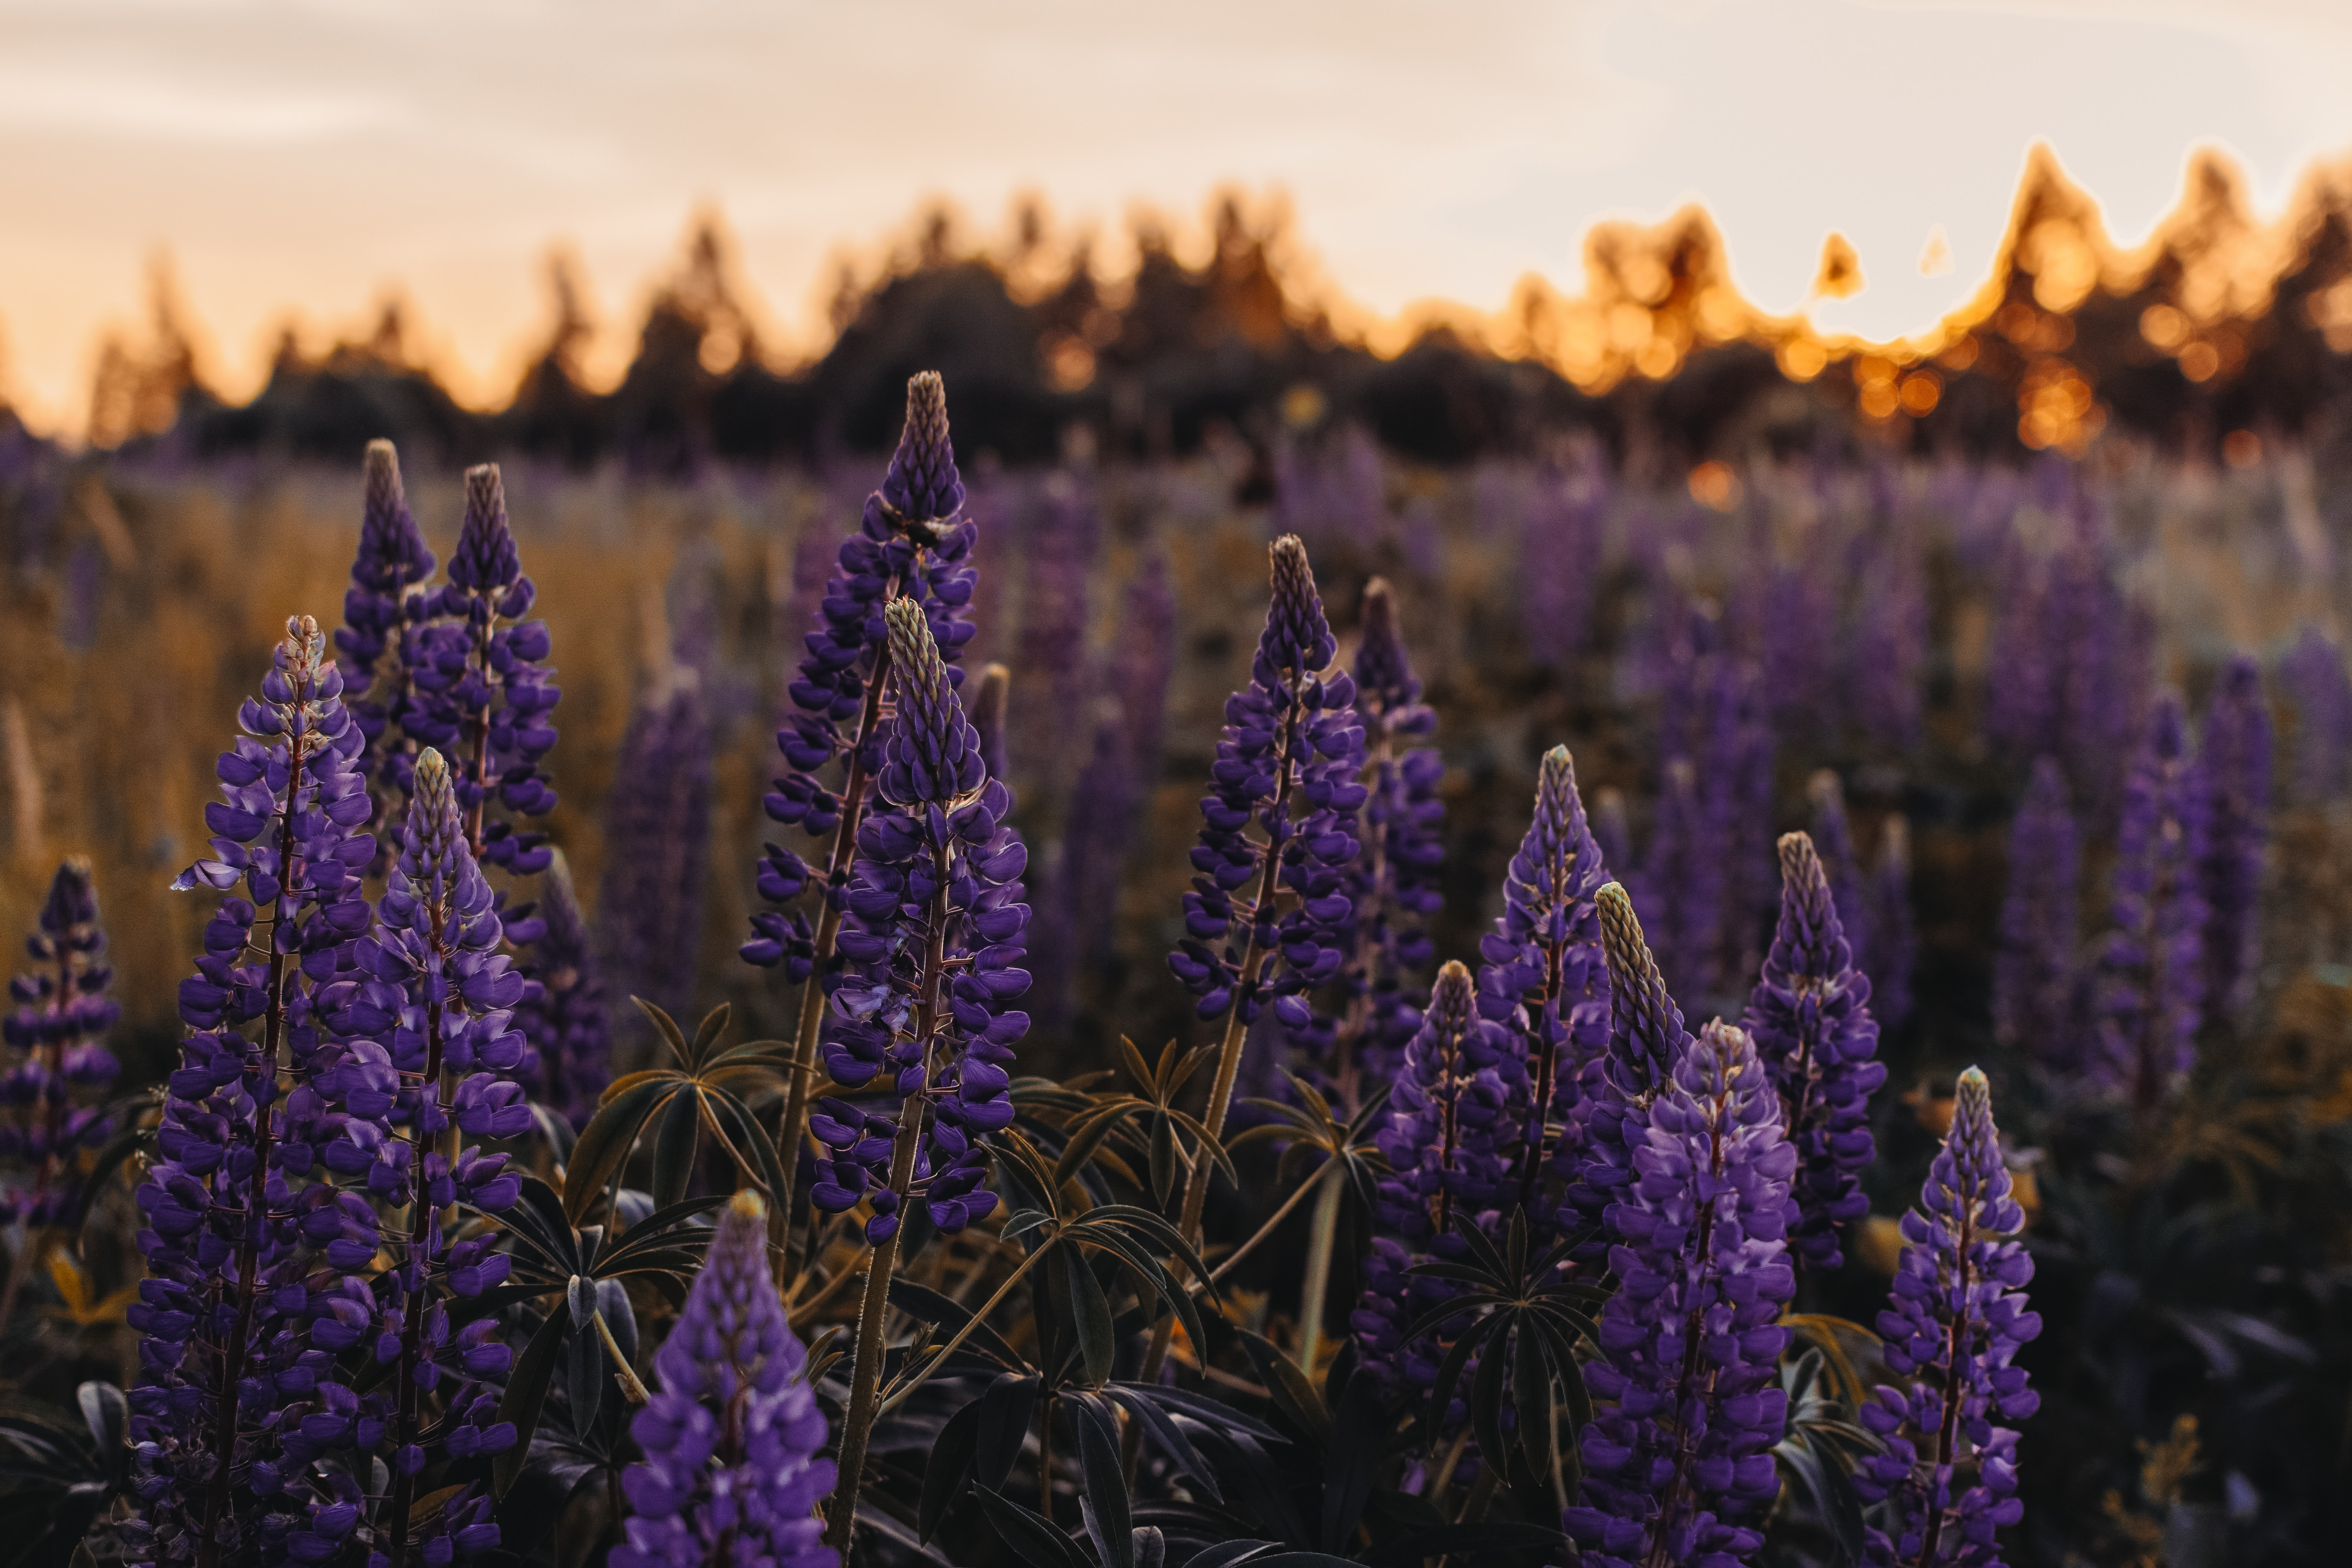 Lupine blossoms in a field at golden hour.